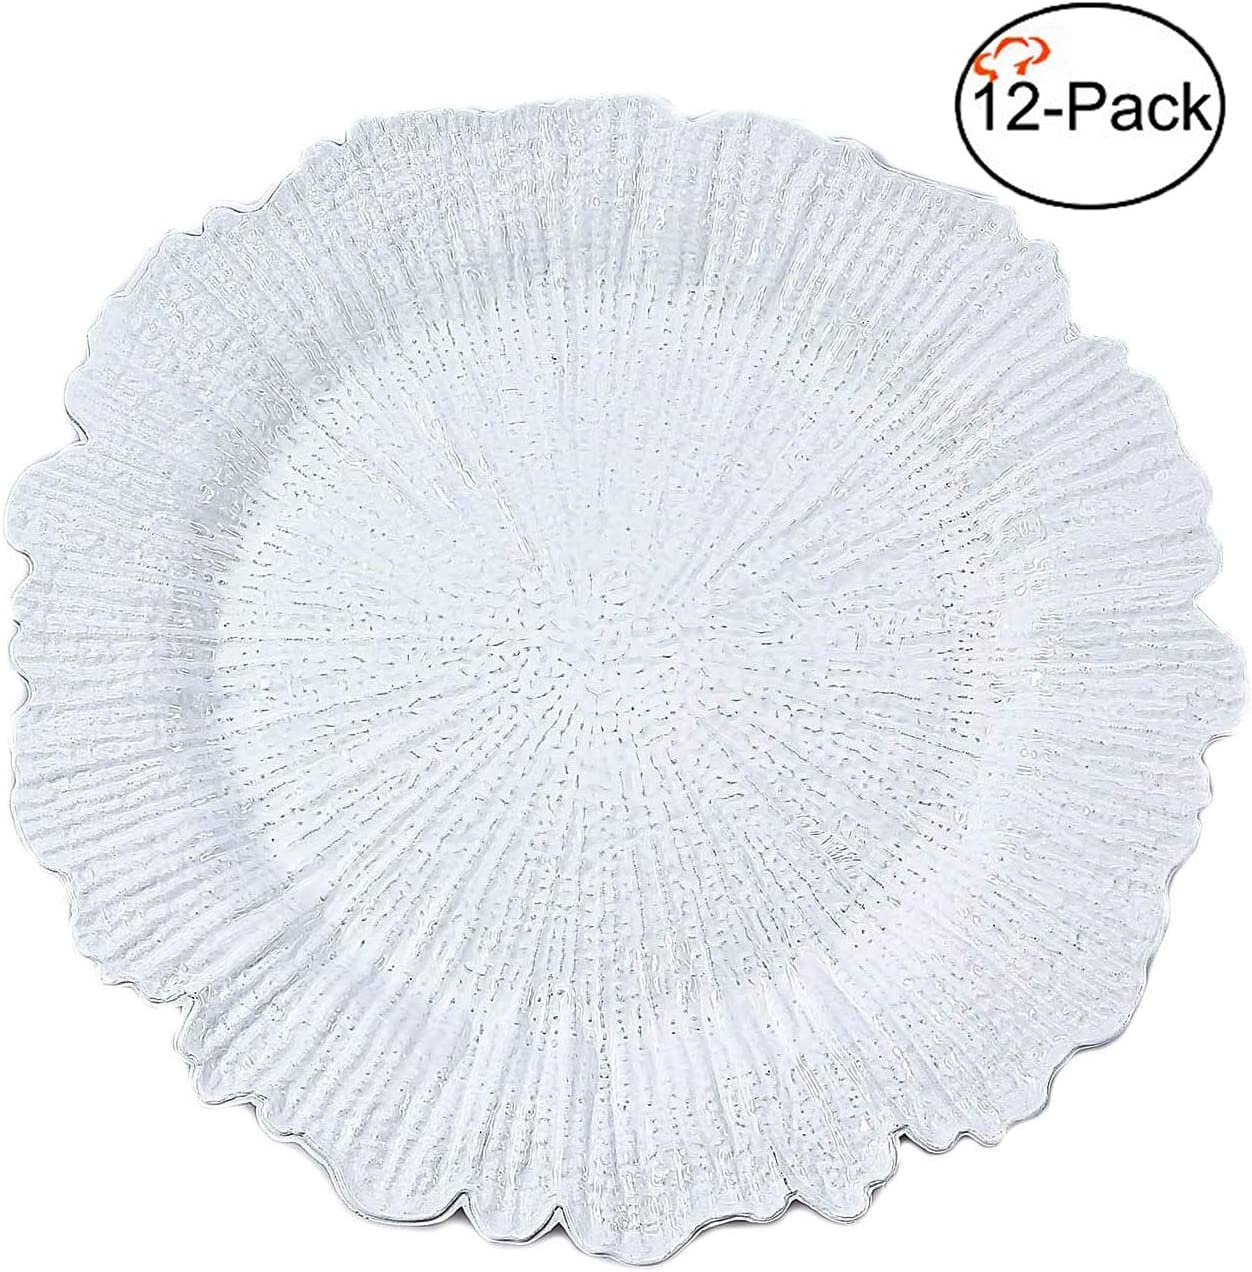   Tiger Chef Charger Plates - White Plate Chargers for Dinner Plates - Wedding Décor Place-mats (12, White Reef): Charger & Service Plates